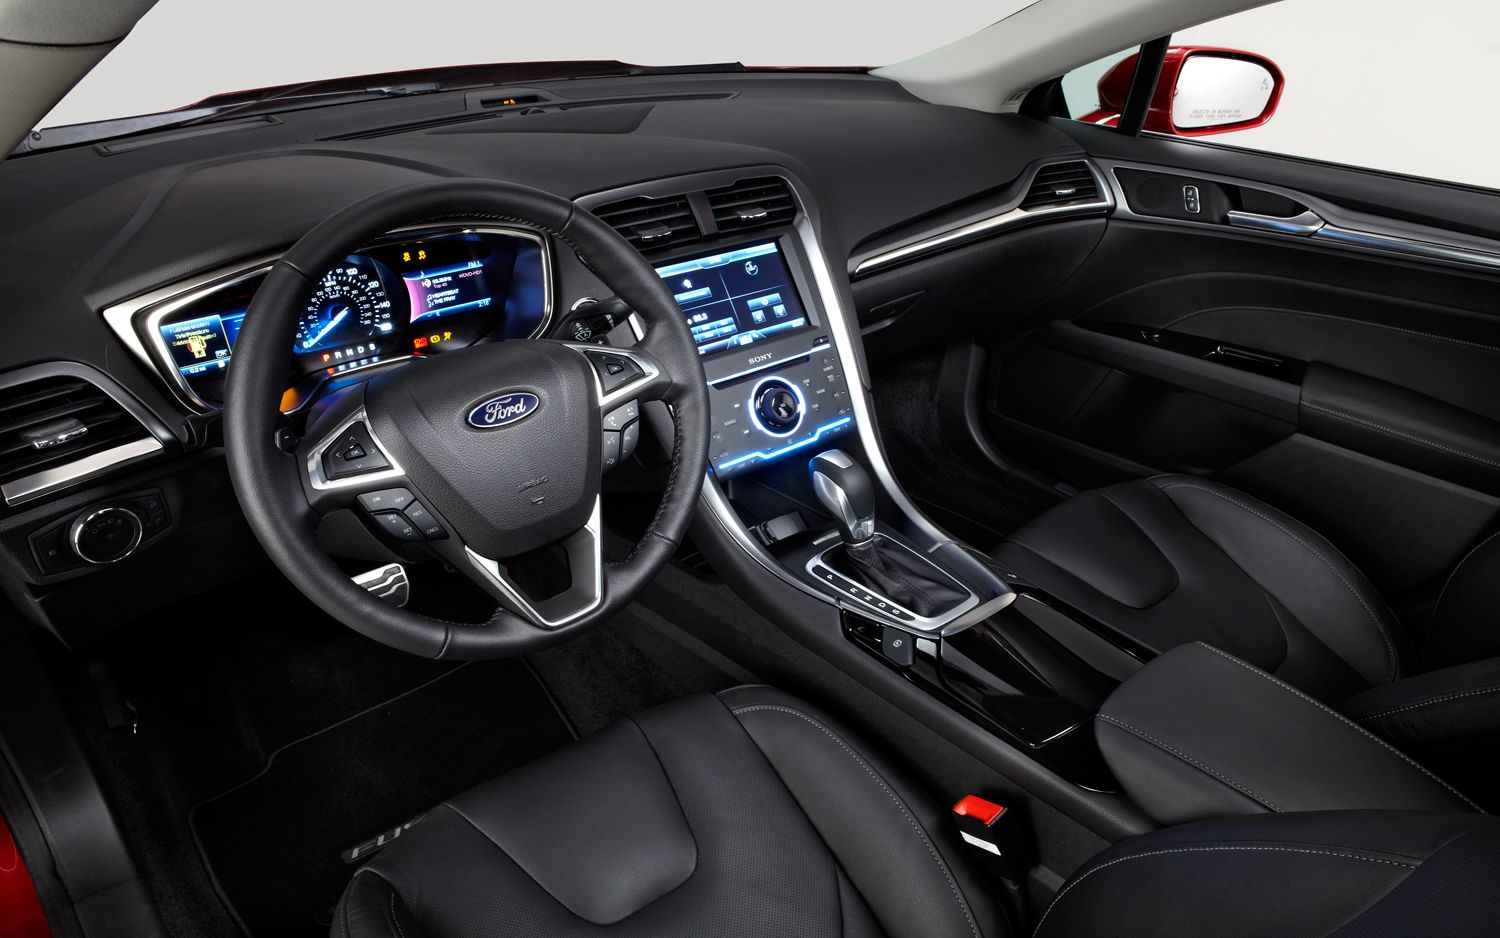 inside the 2015 ford fusion wwwlhmfordcom ford superford